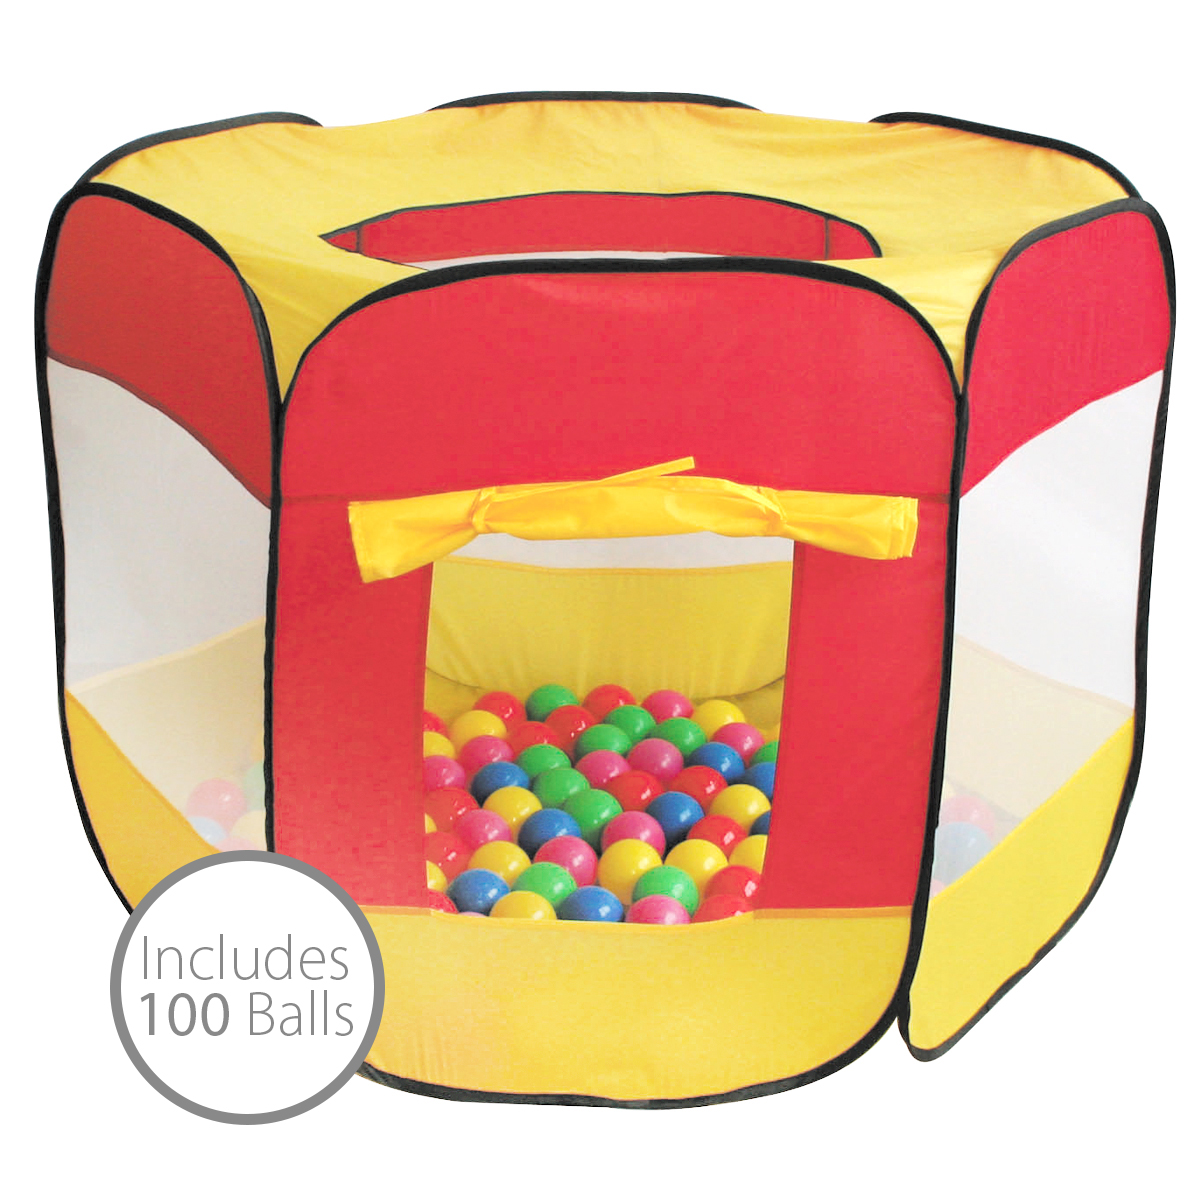 Bentley-Kids-Childrens-Pop-Up-Ball-Pit-Play-  sc 1 st  eBay & Bentley Kids Childrens Pop Up Ball Pit Play Indoor Playhouse Tent ...